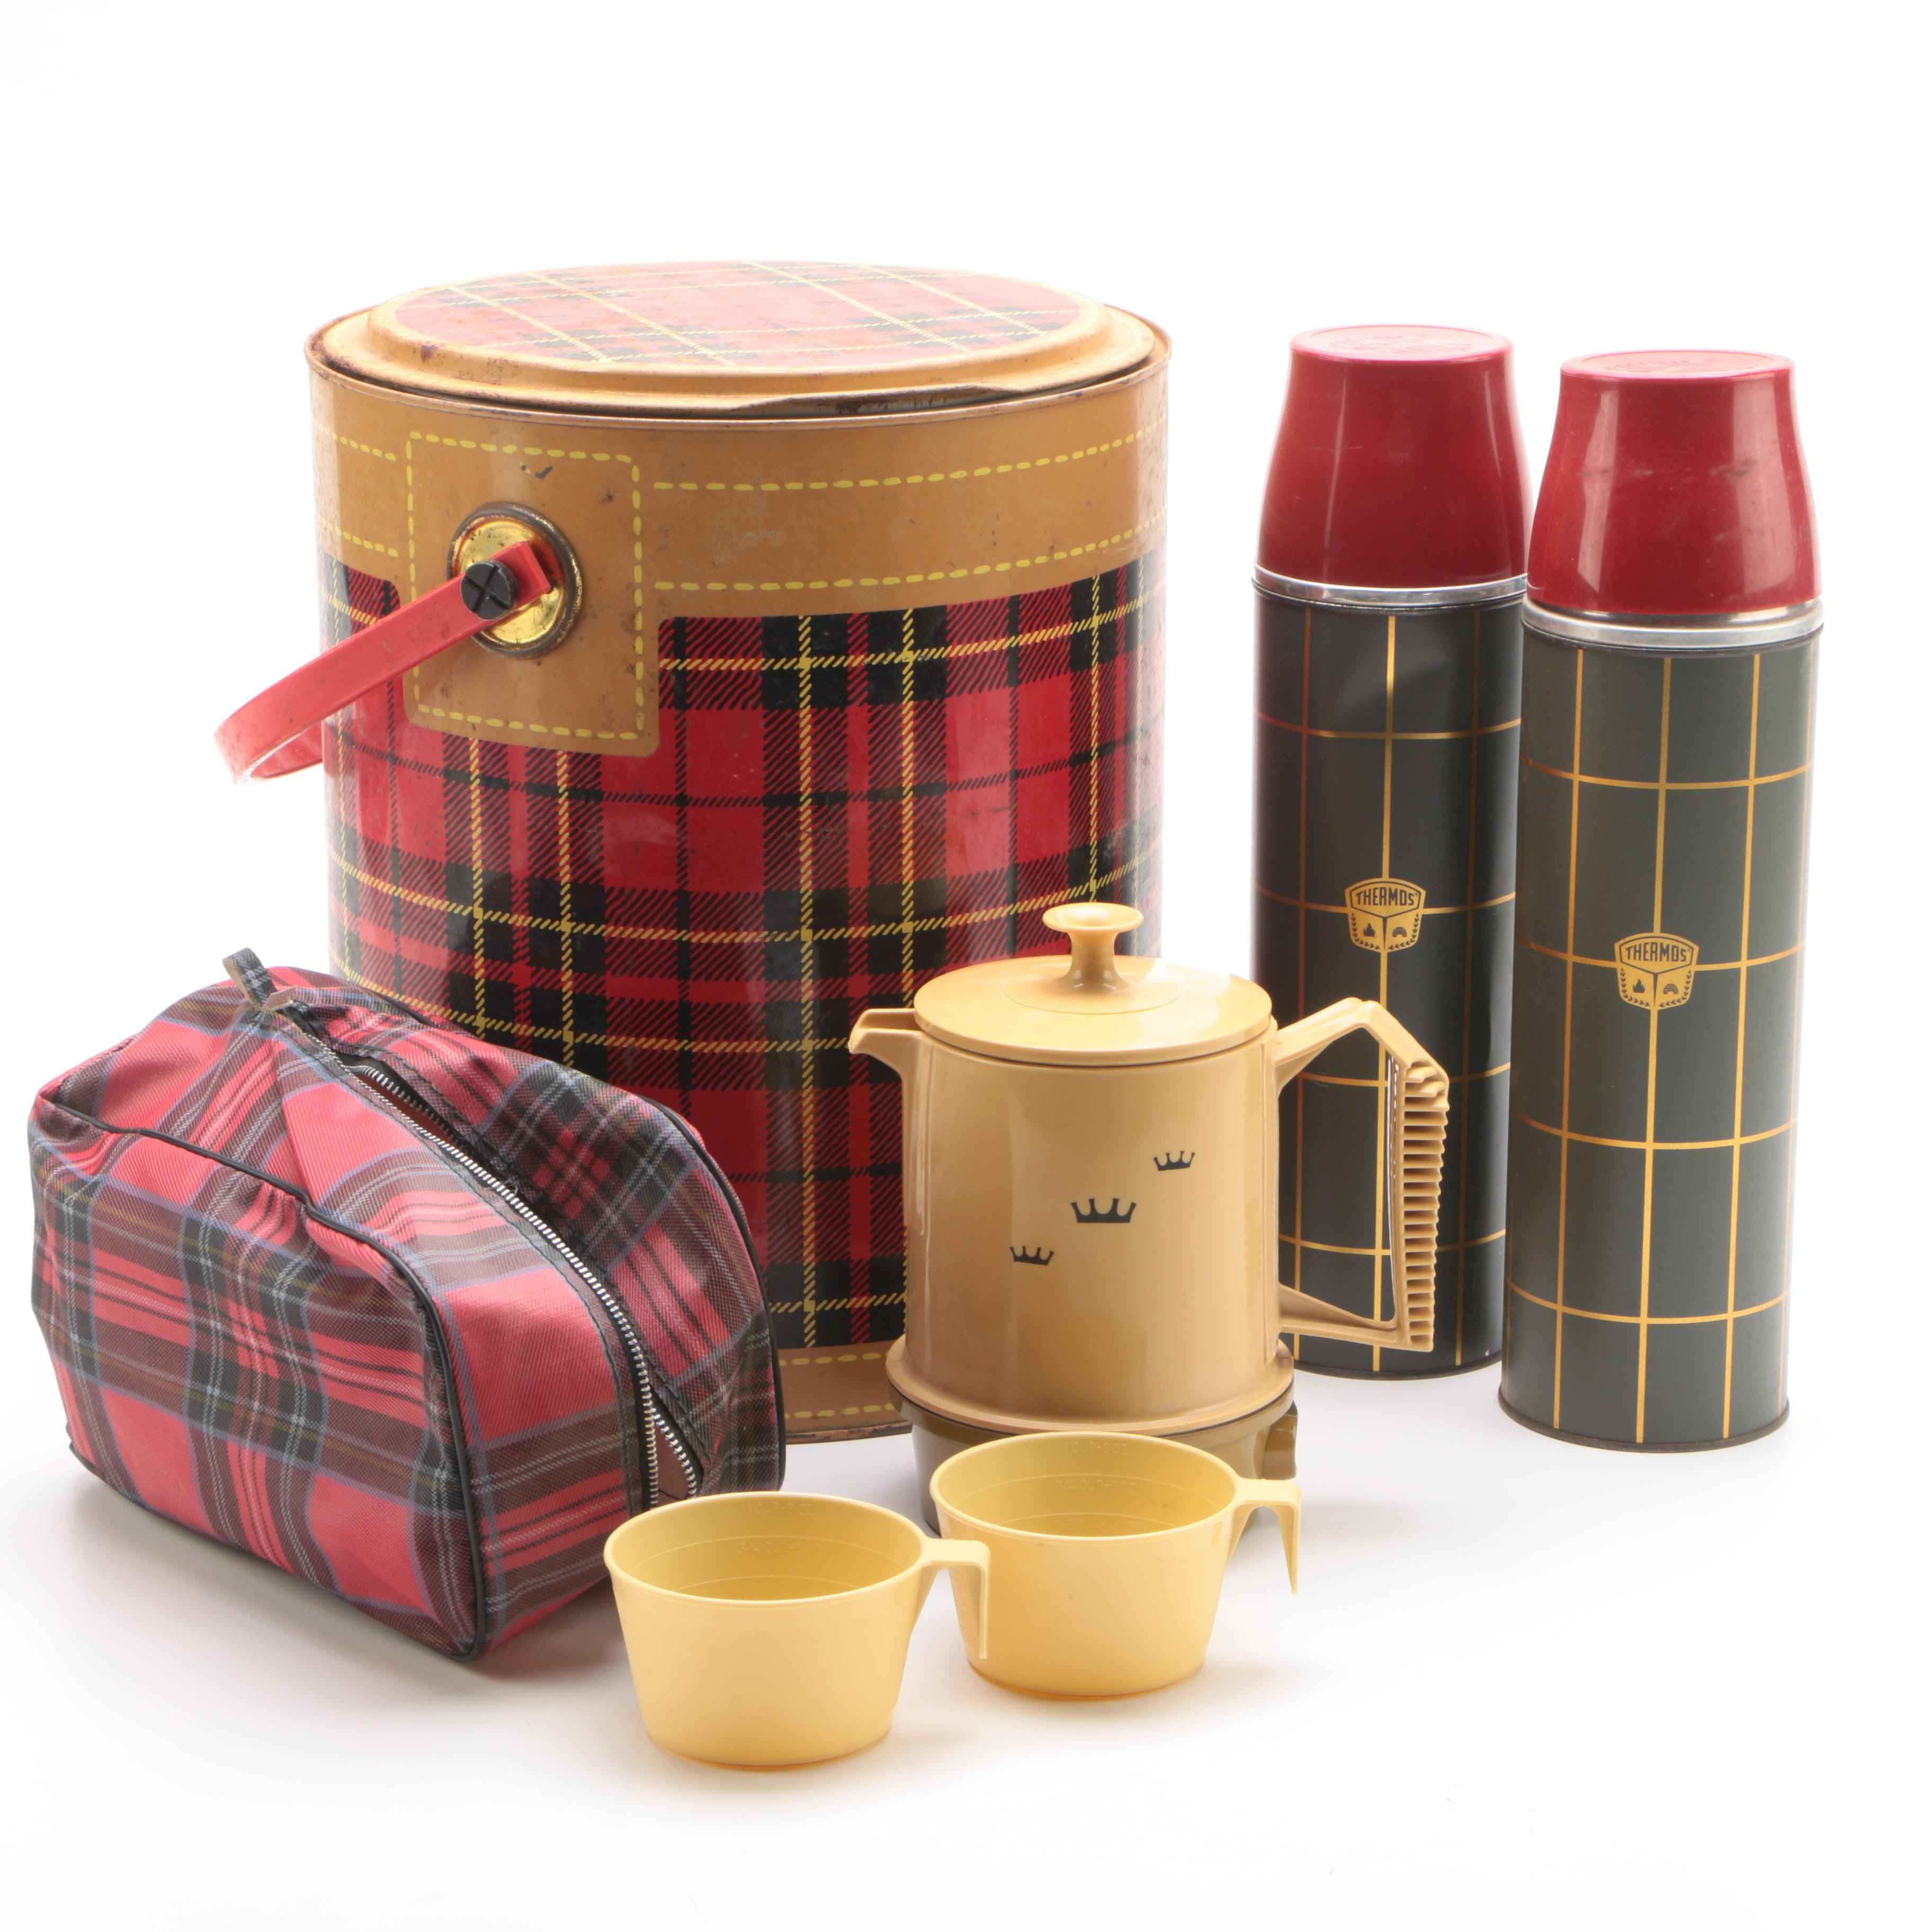 Thermos Brand Quart Size Metal Bottles, Coffee Peculator and More